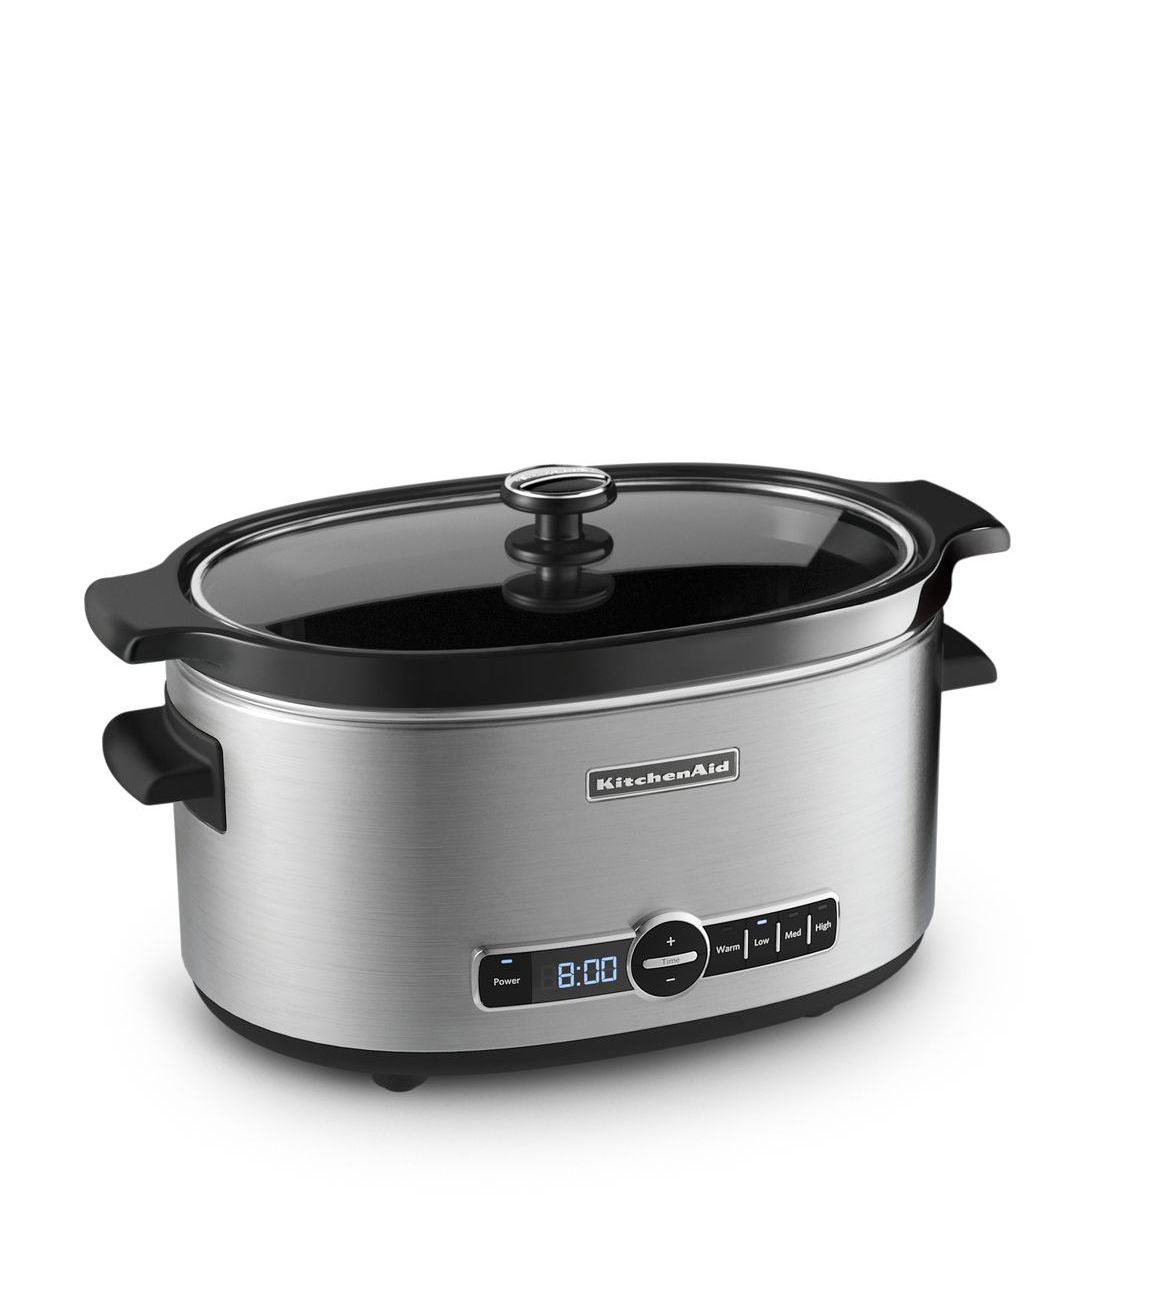 KitchenAid-6-Quart-Slow-Cooker-with-Solid-Glass-Lid-KSC6223SS